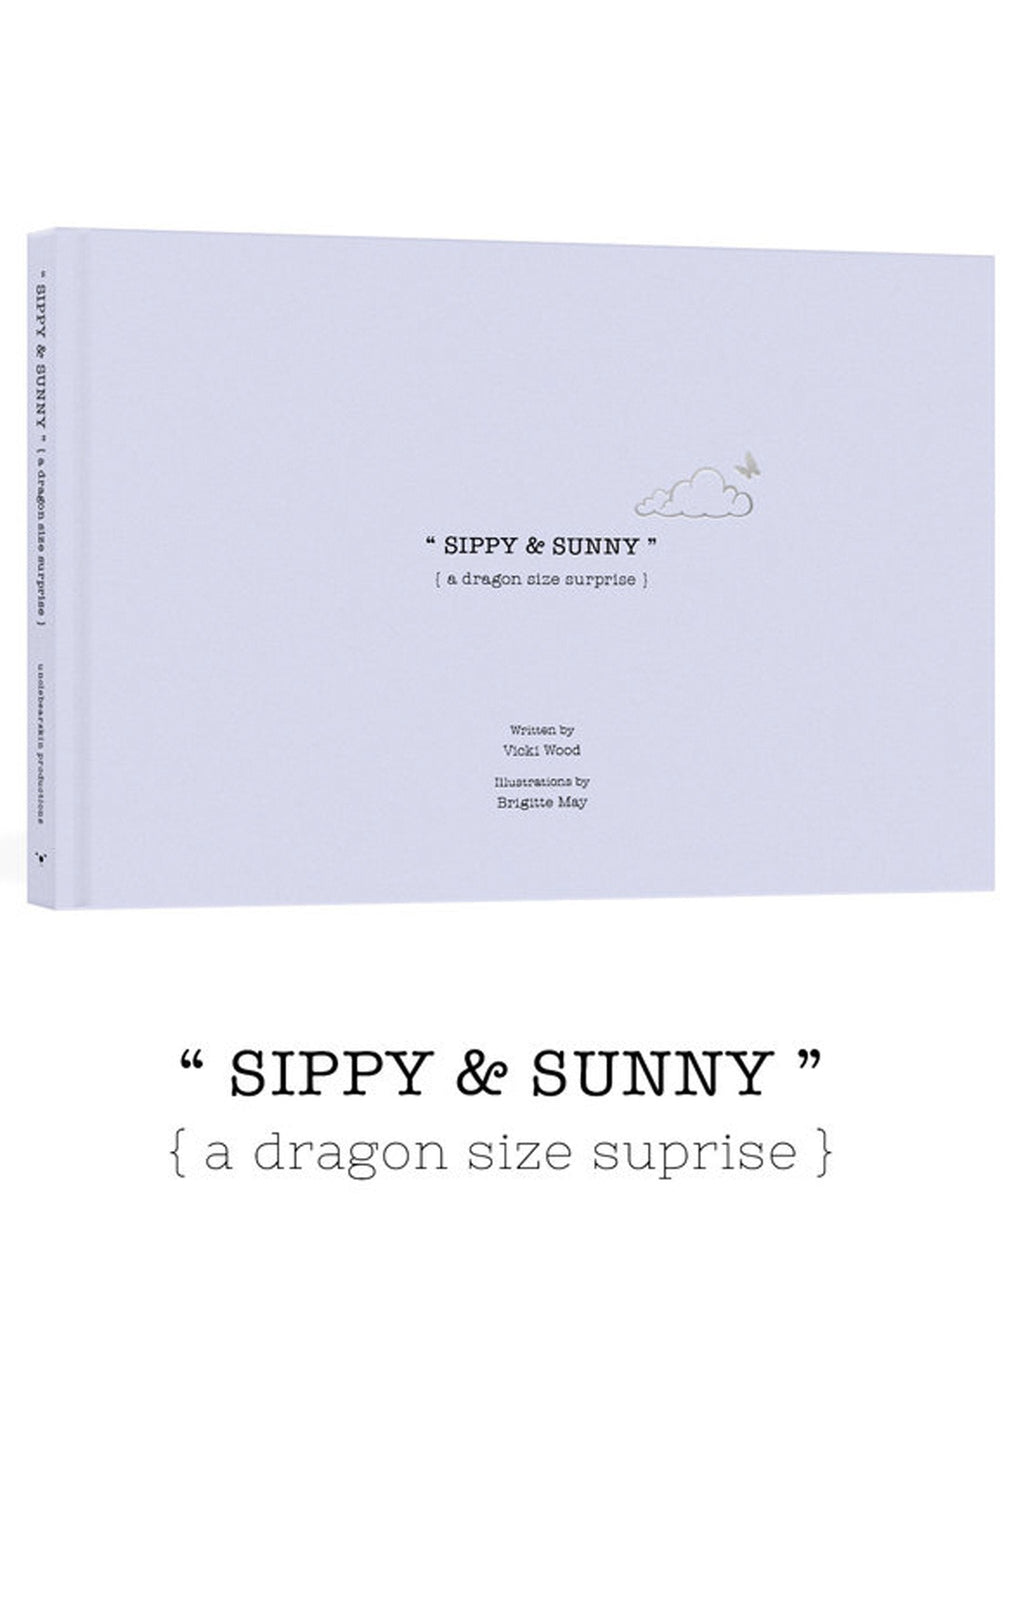 Unclebearskin Productions, SIPPY & SUNNY, a dragon size surprise - Hello Little Birdie